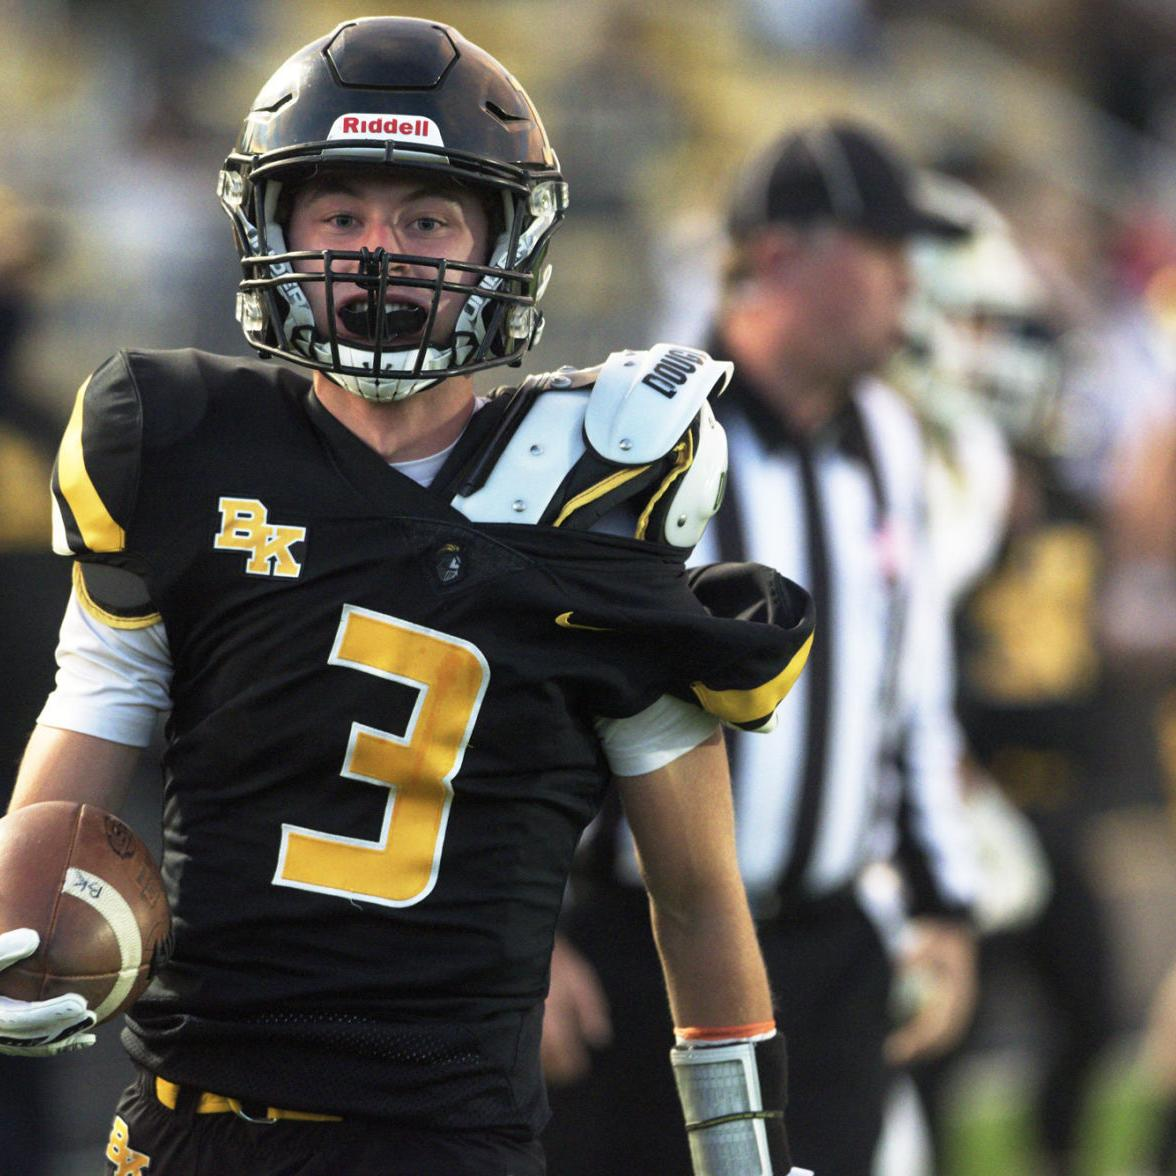 PREP FOOTBALL PREVIEWS: Another large senior class helps Bishop Kelly reload for another run